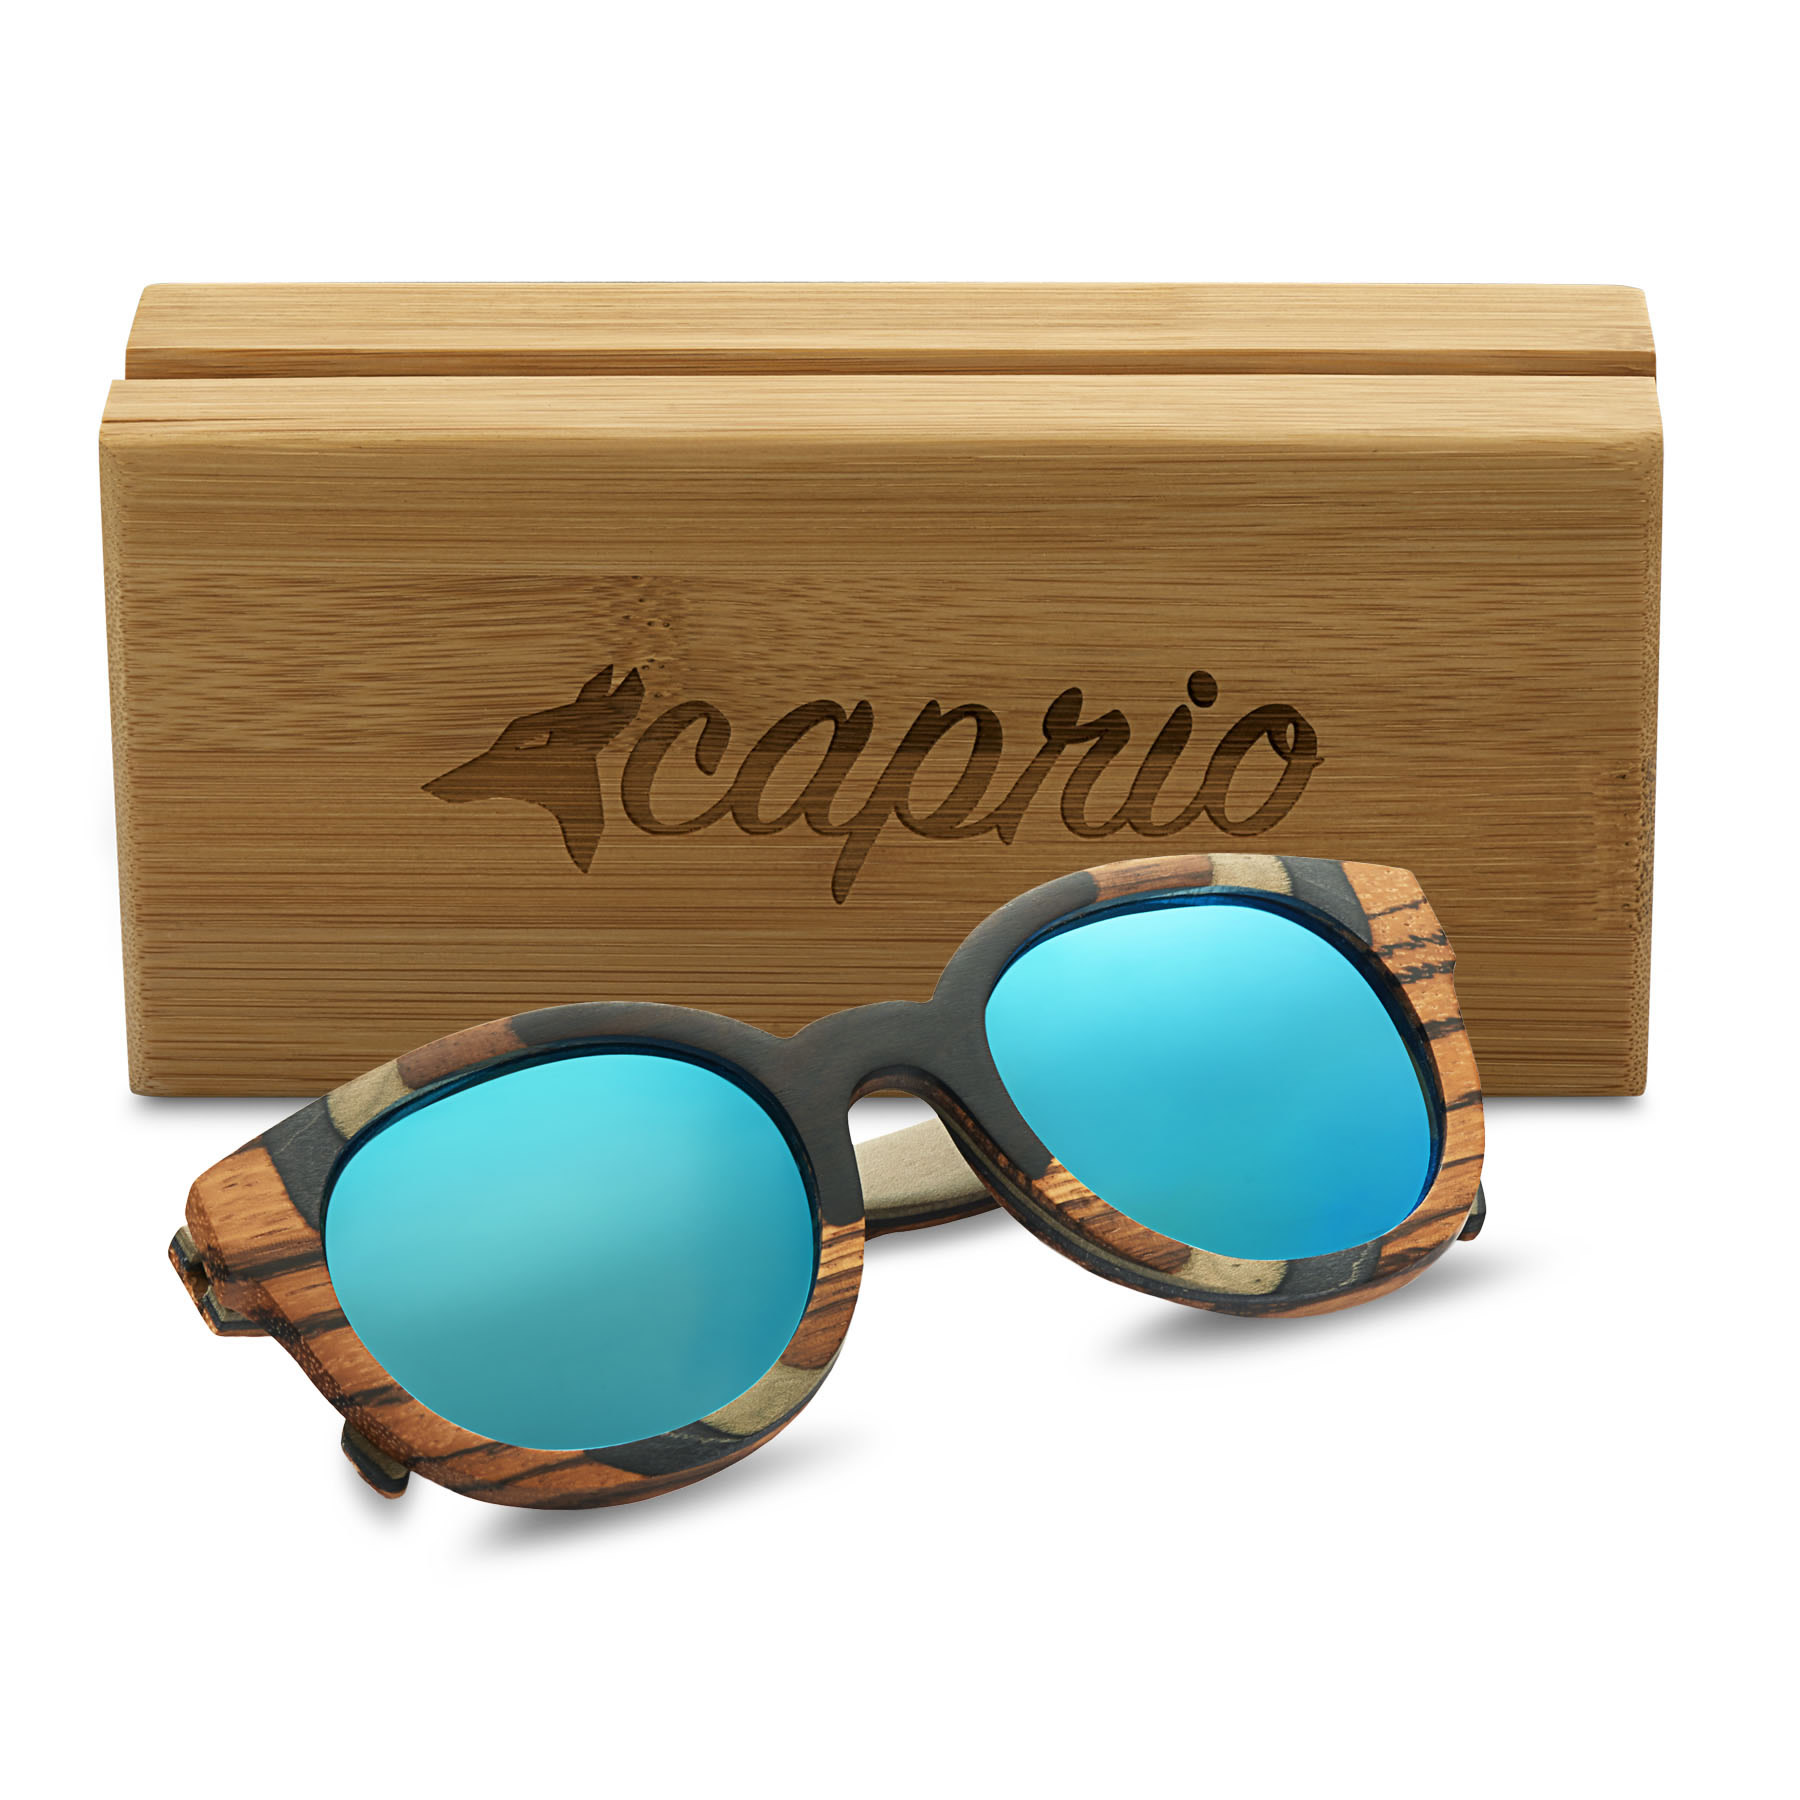 Caprio TAC Polarized Round Wooden Sunglasses for Women ...